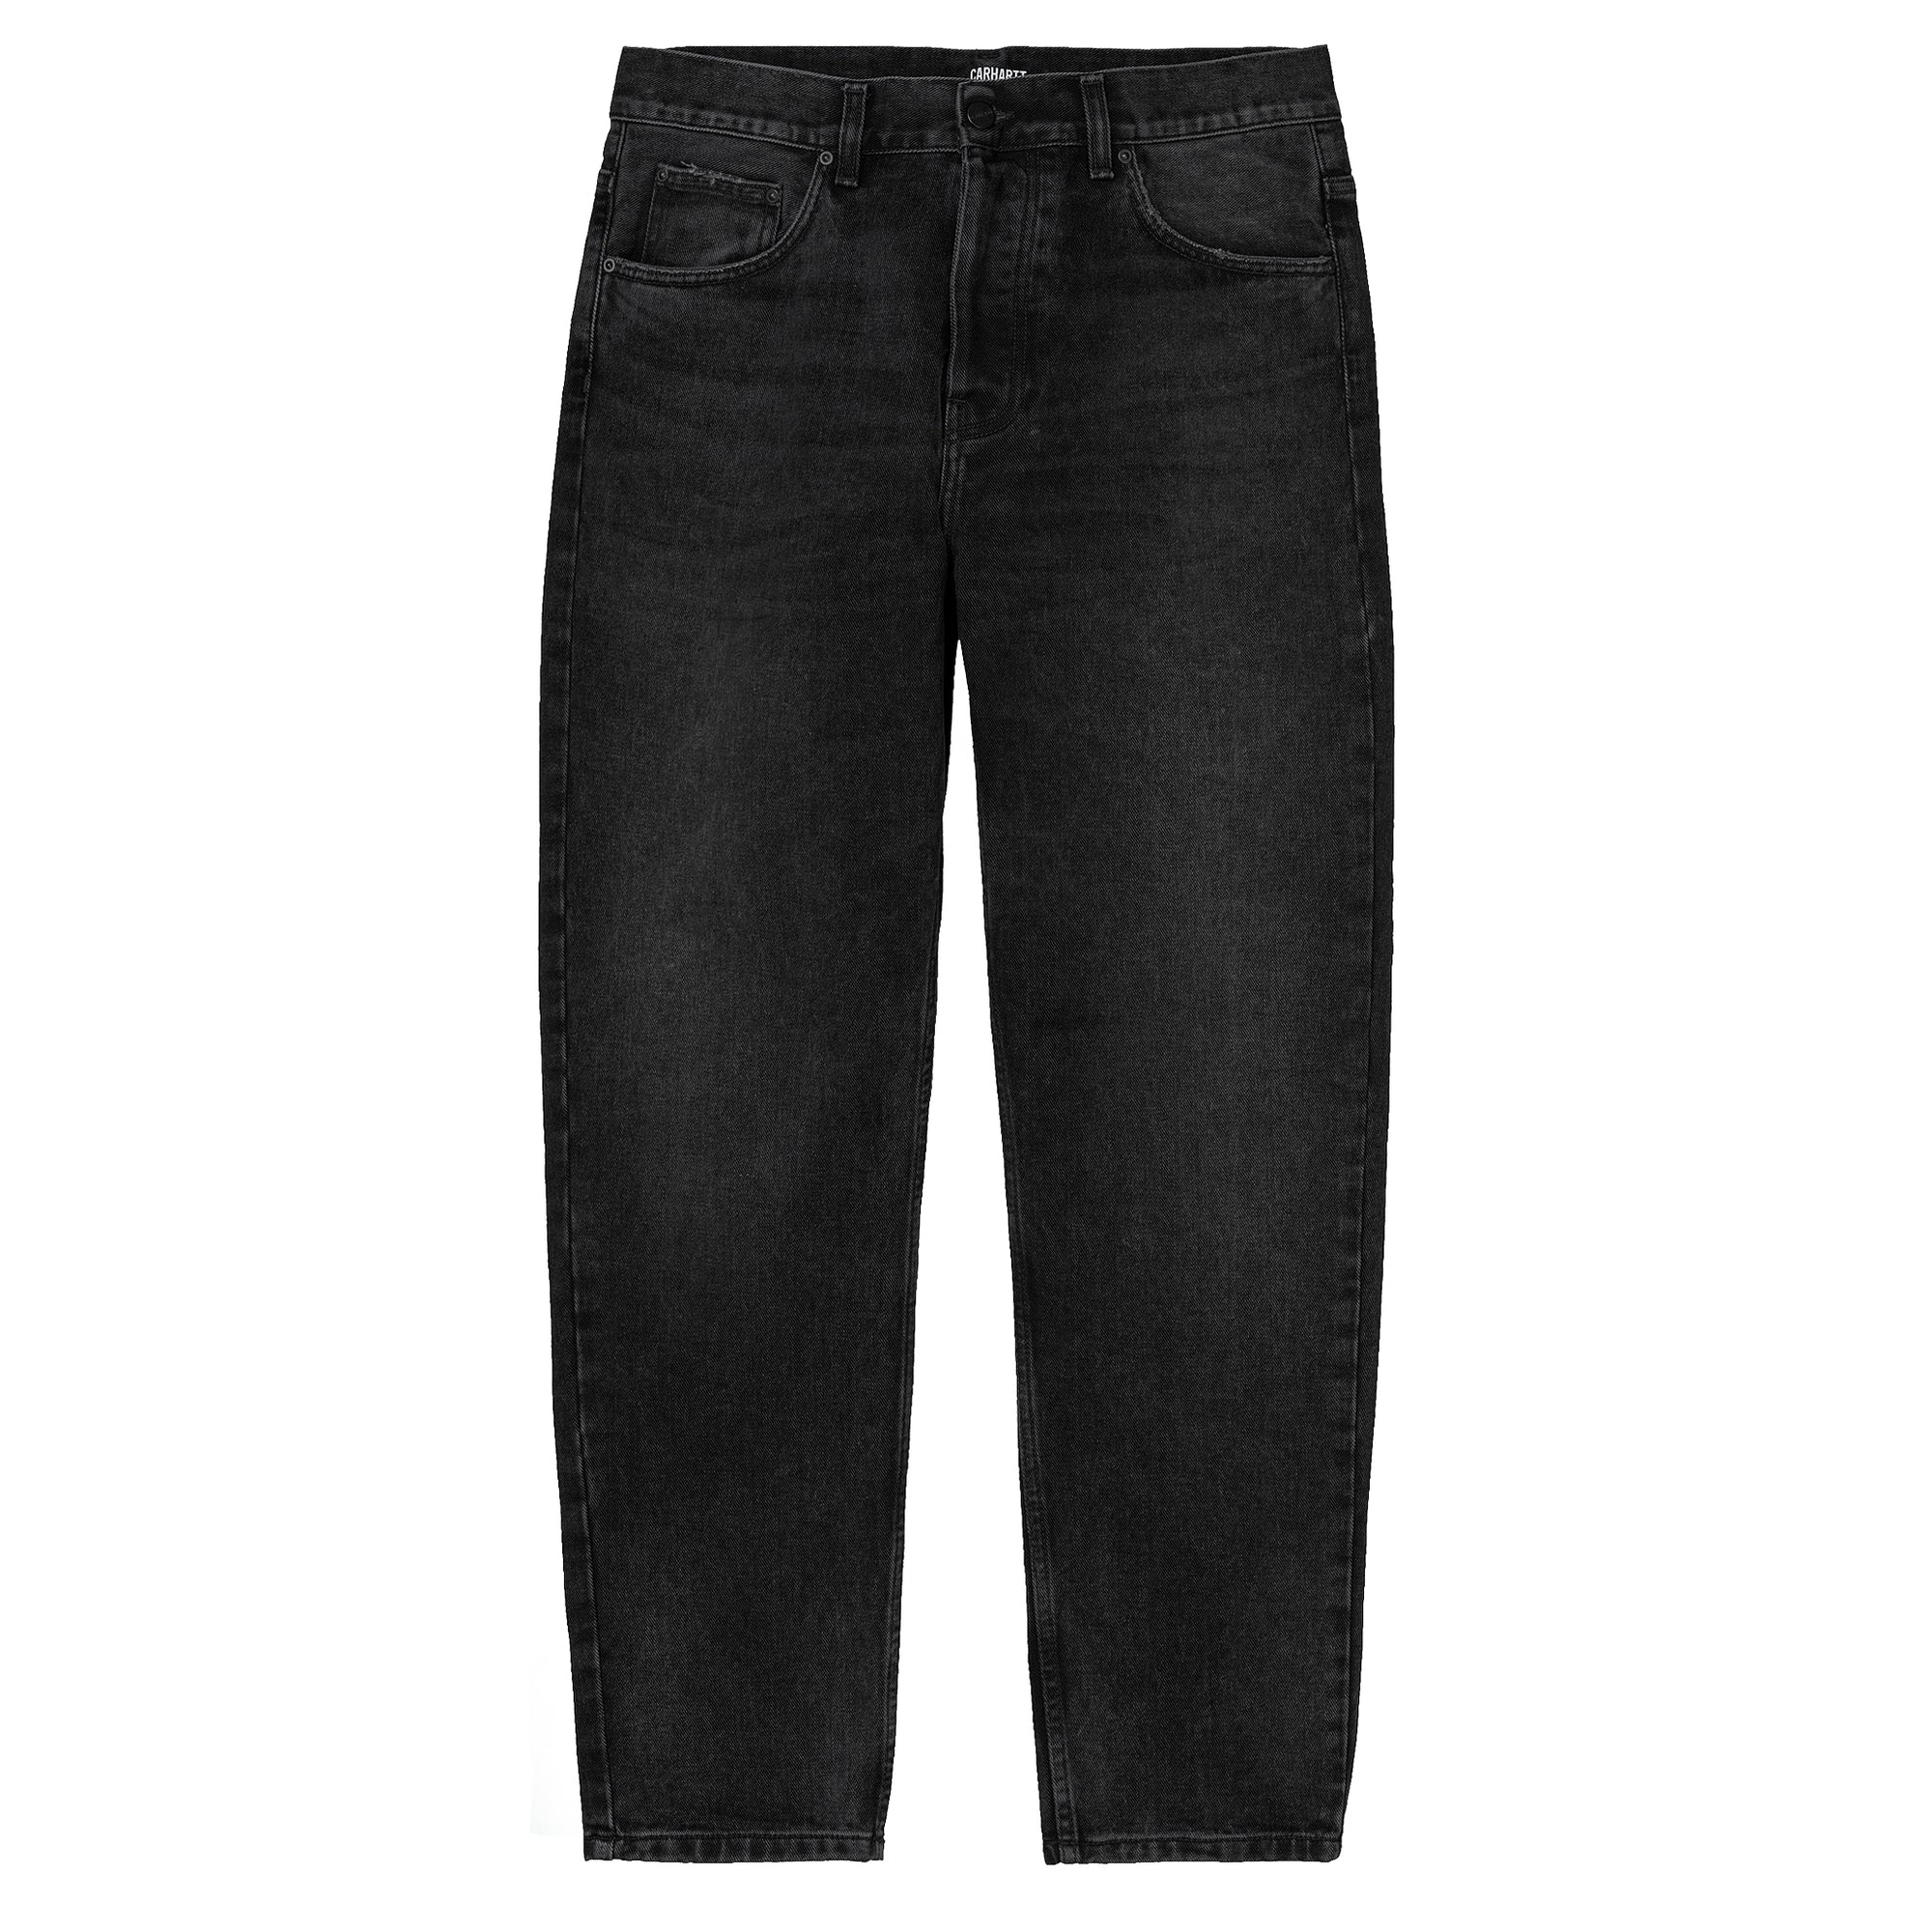 Carhartt WIP Newel Pant: Black Mid Worn Wash - The Union Project